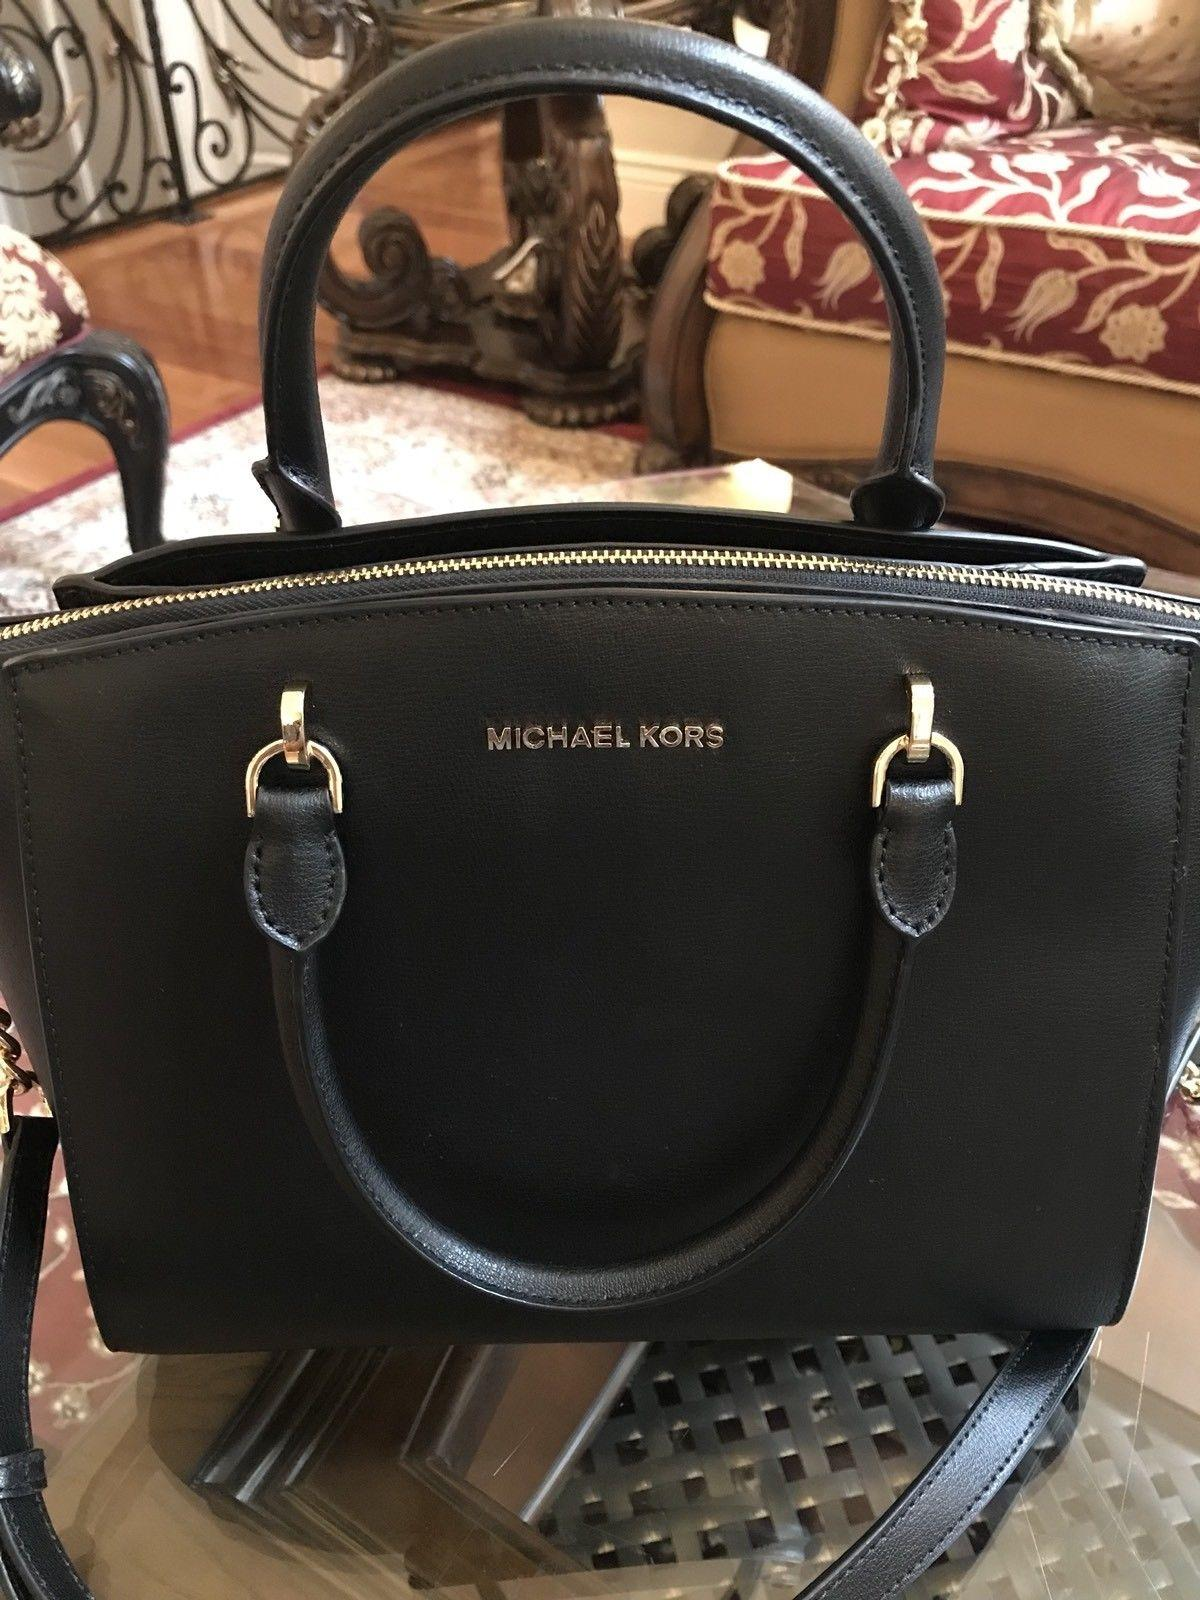 09d884b75d2e ... cheap michael kors ellis large saffiano leather crossbody strap satchel  in black. 123456789101112 2088e 79146